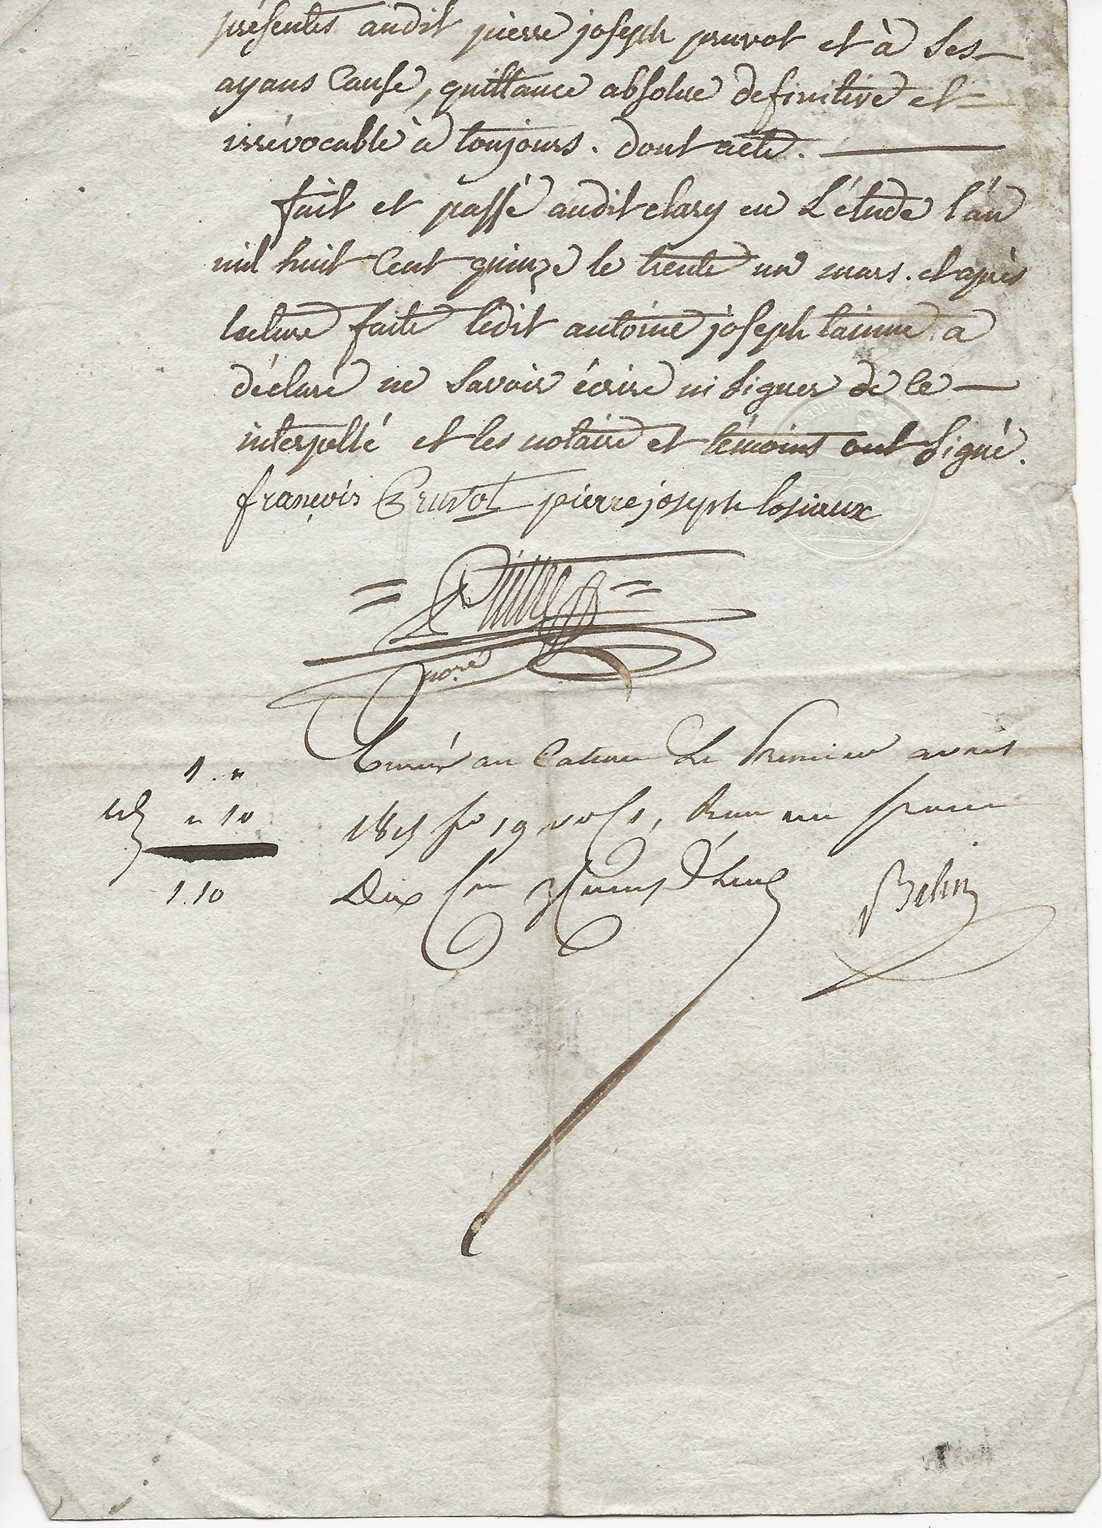 1815 quittance pierre jh pruvot a antoine jh taine 002